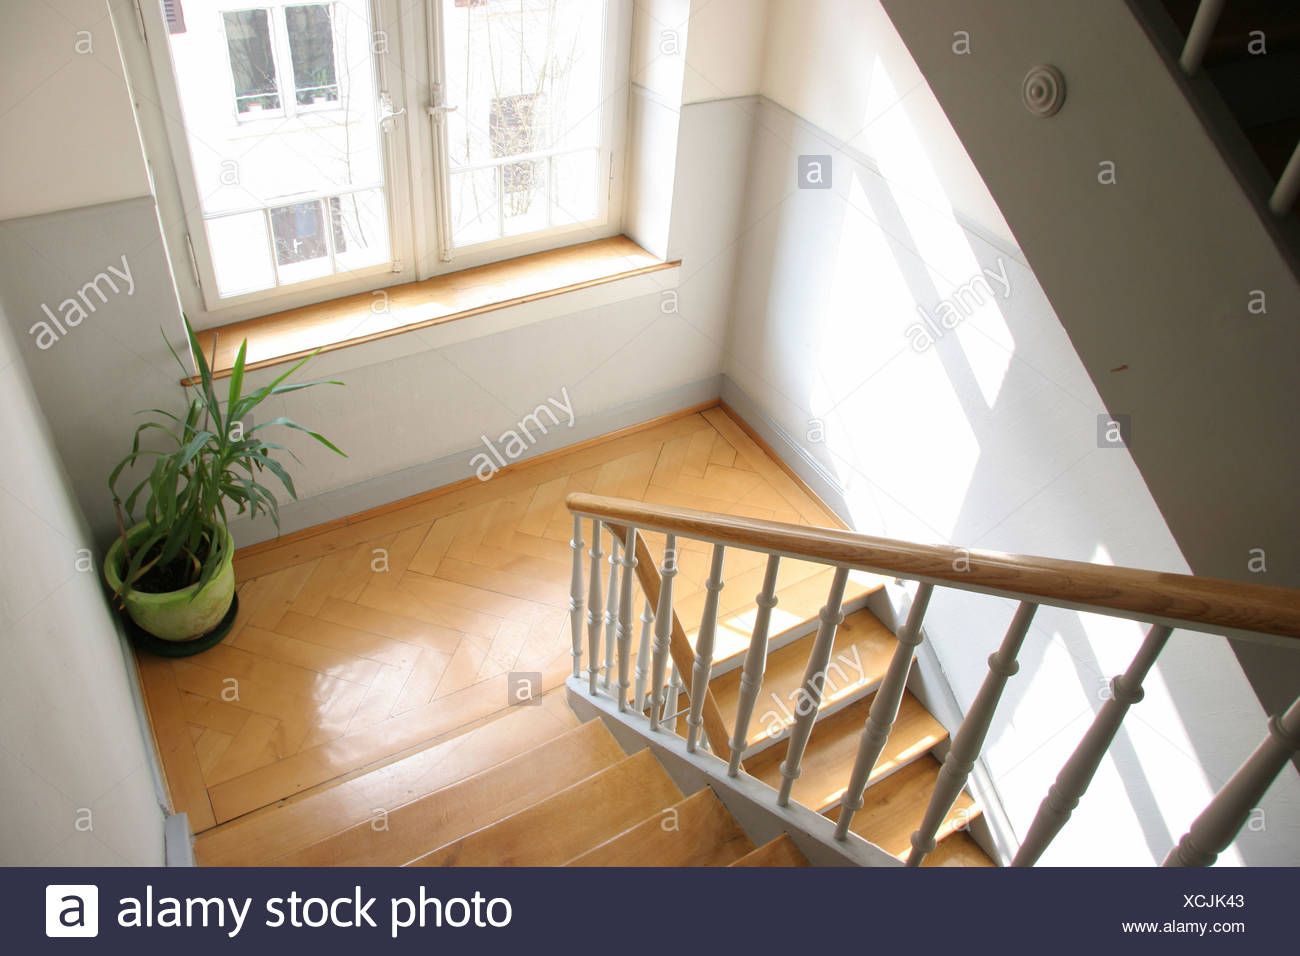 Bottom Ground Grounds Home House Houses Inside Plant Railing Stair  Staircase Stairs Window Wood Wooden